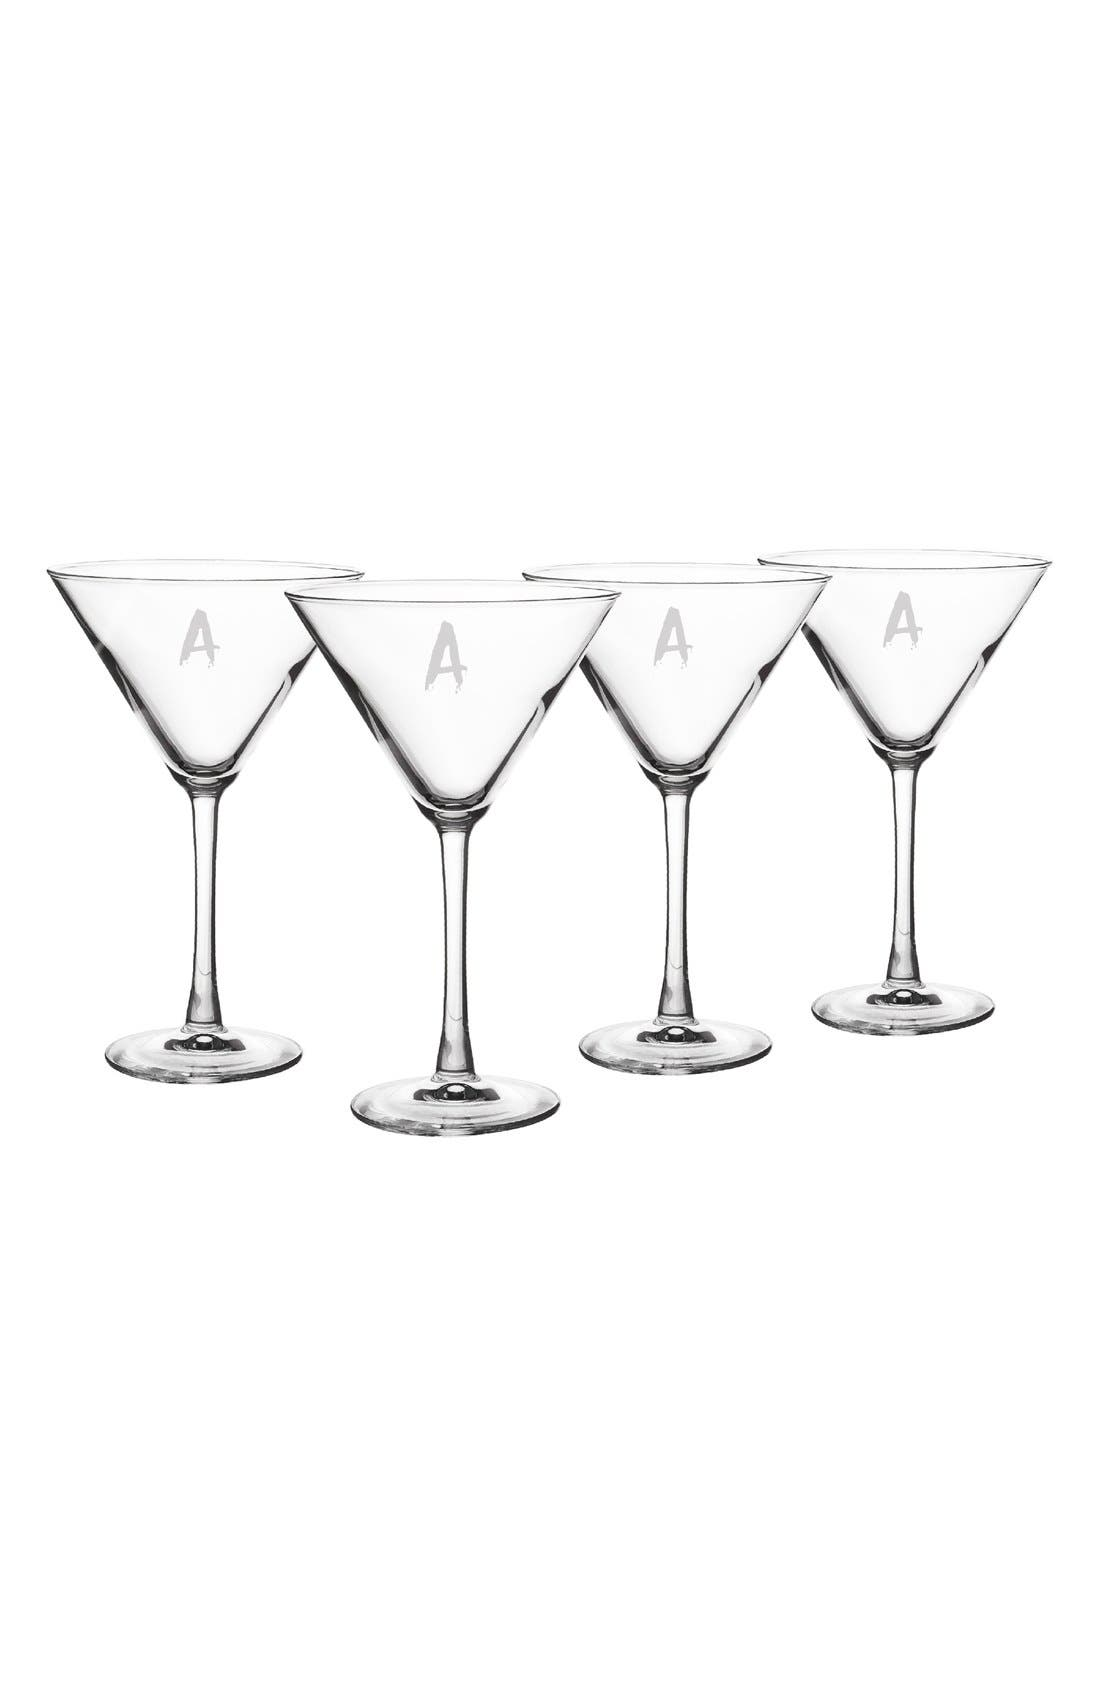 'Spooky' Monogram Martini Glasses,                             Main thumbnail 1, color,                             100